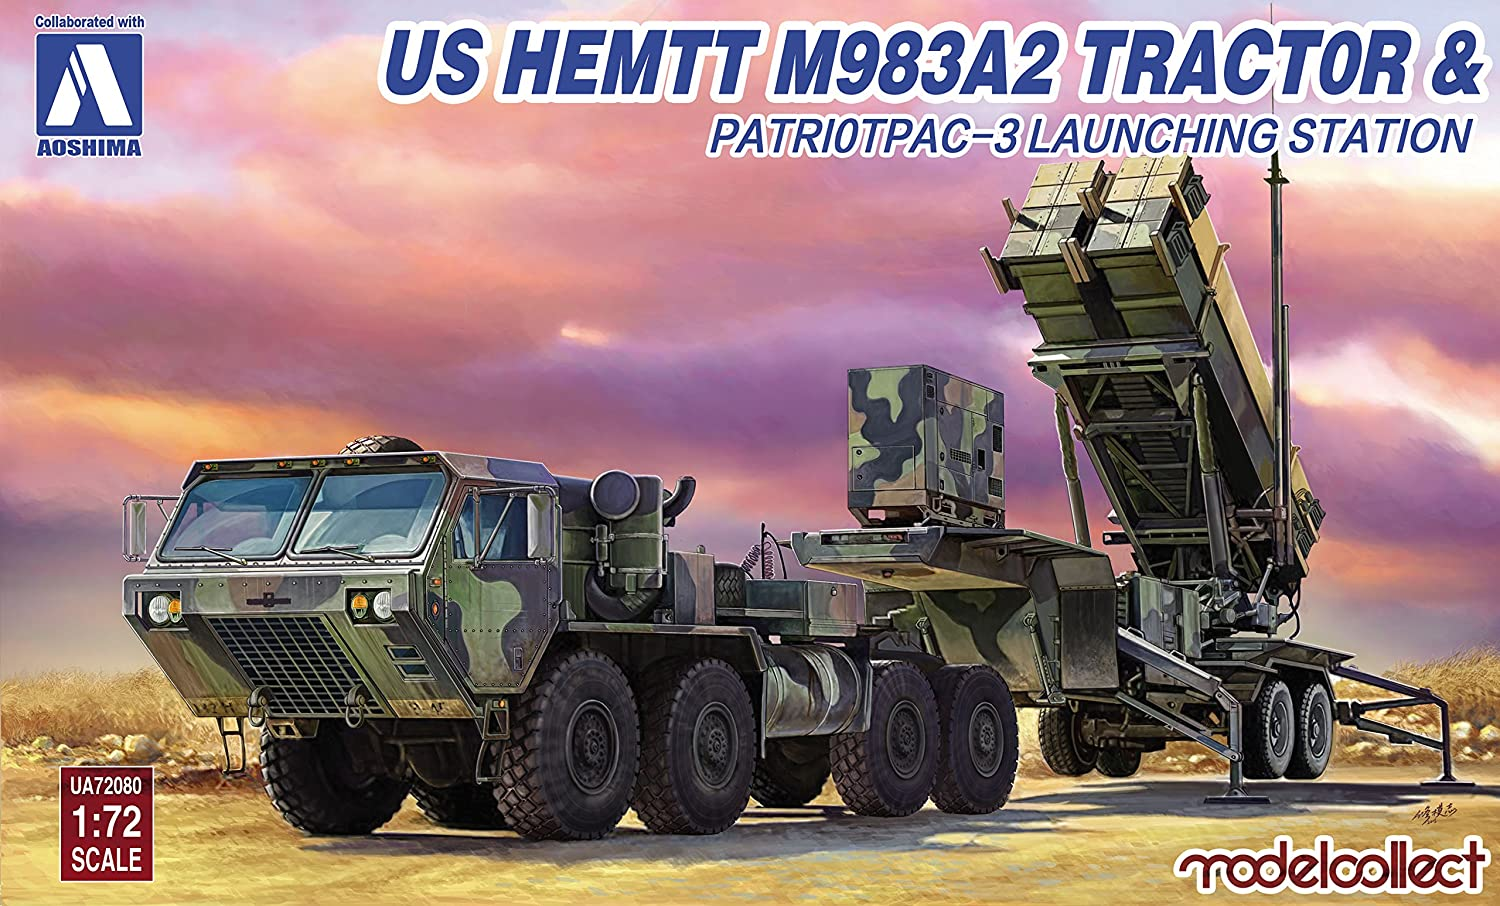 1/72 US Army HEMTT M983 & Patriot PAC 3 launch aircraft plastic model UA72080